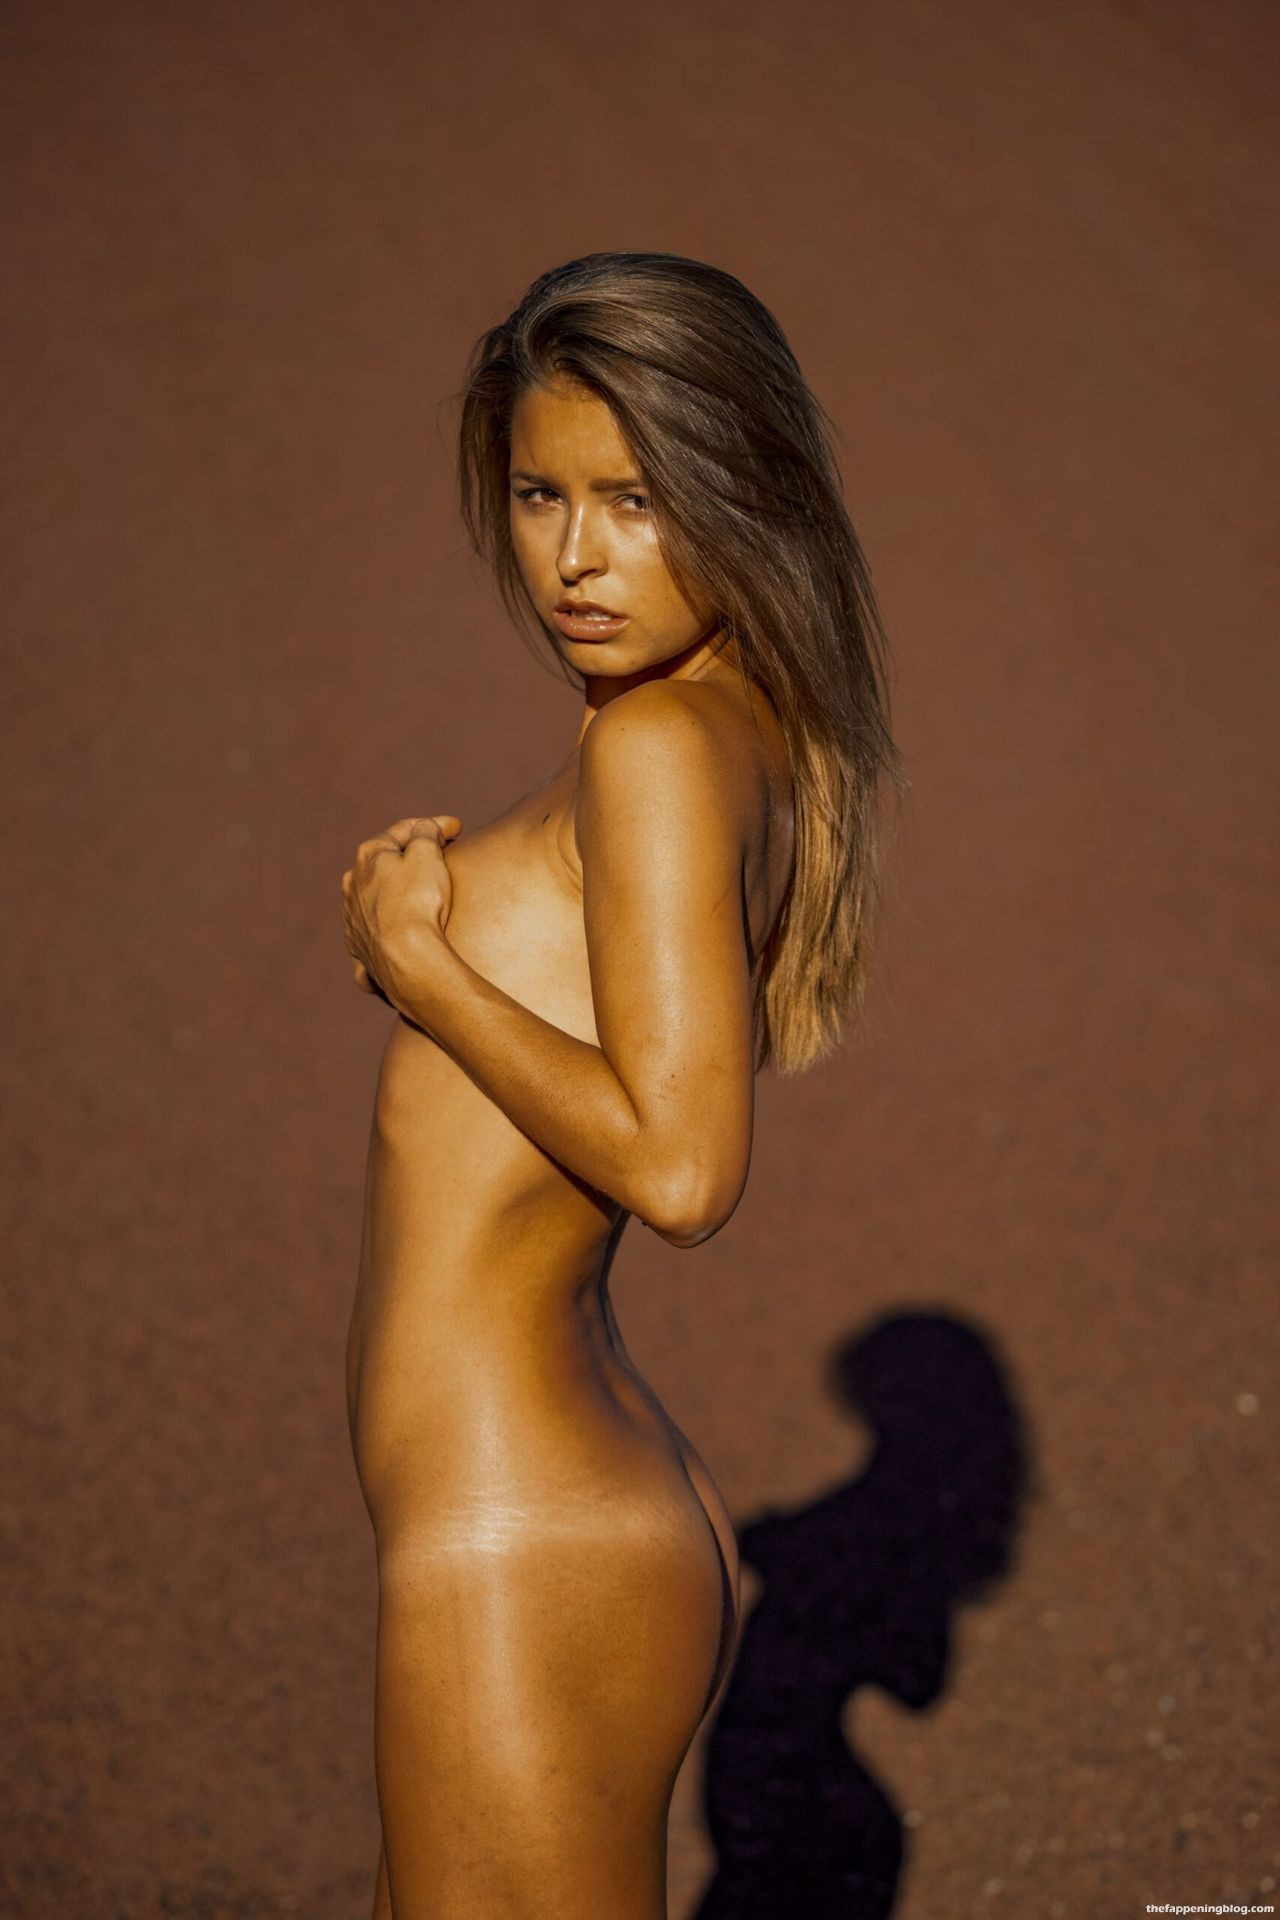 Marisa-Papen-Stunning-Naked-Body-30-scaled1-thefappeningblog.com_.jpg